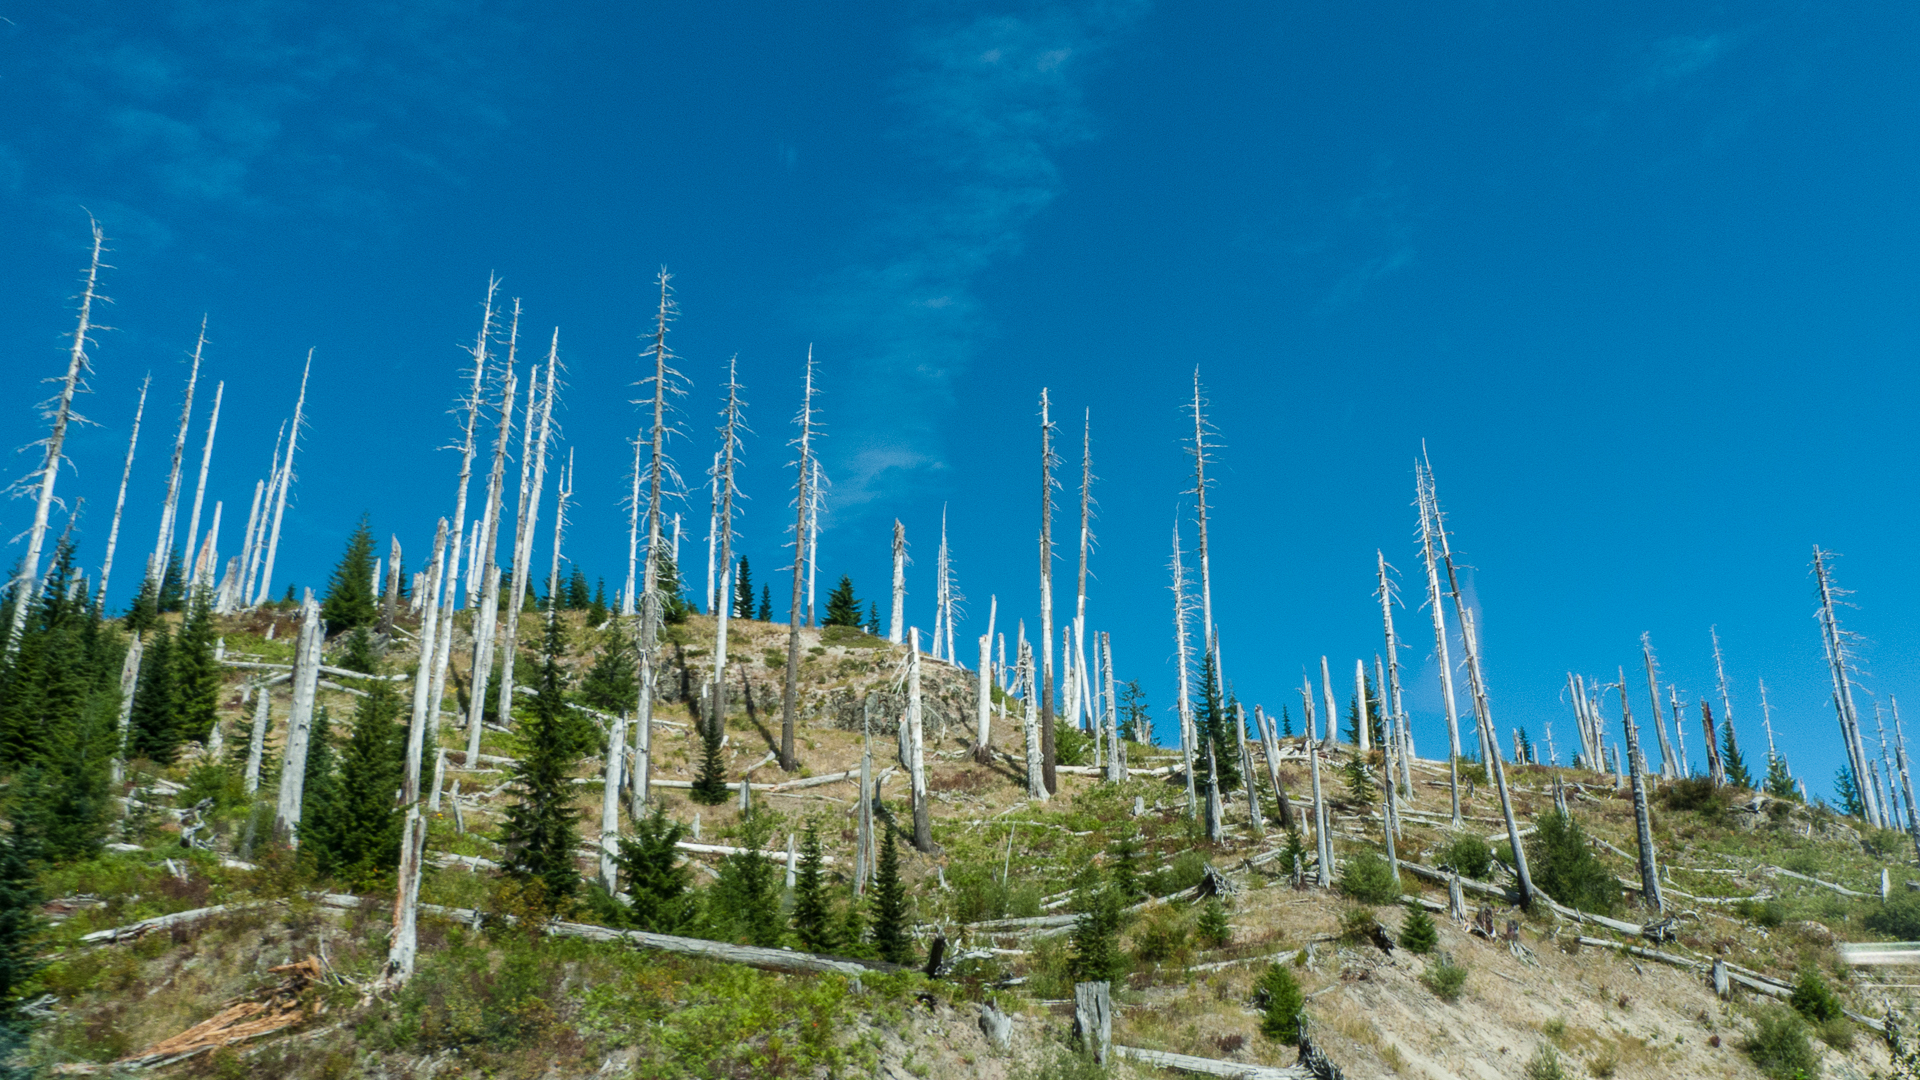 Dead trees are everywhere. But you could see where the trees were making a come back.